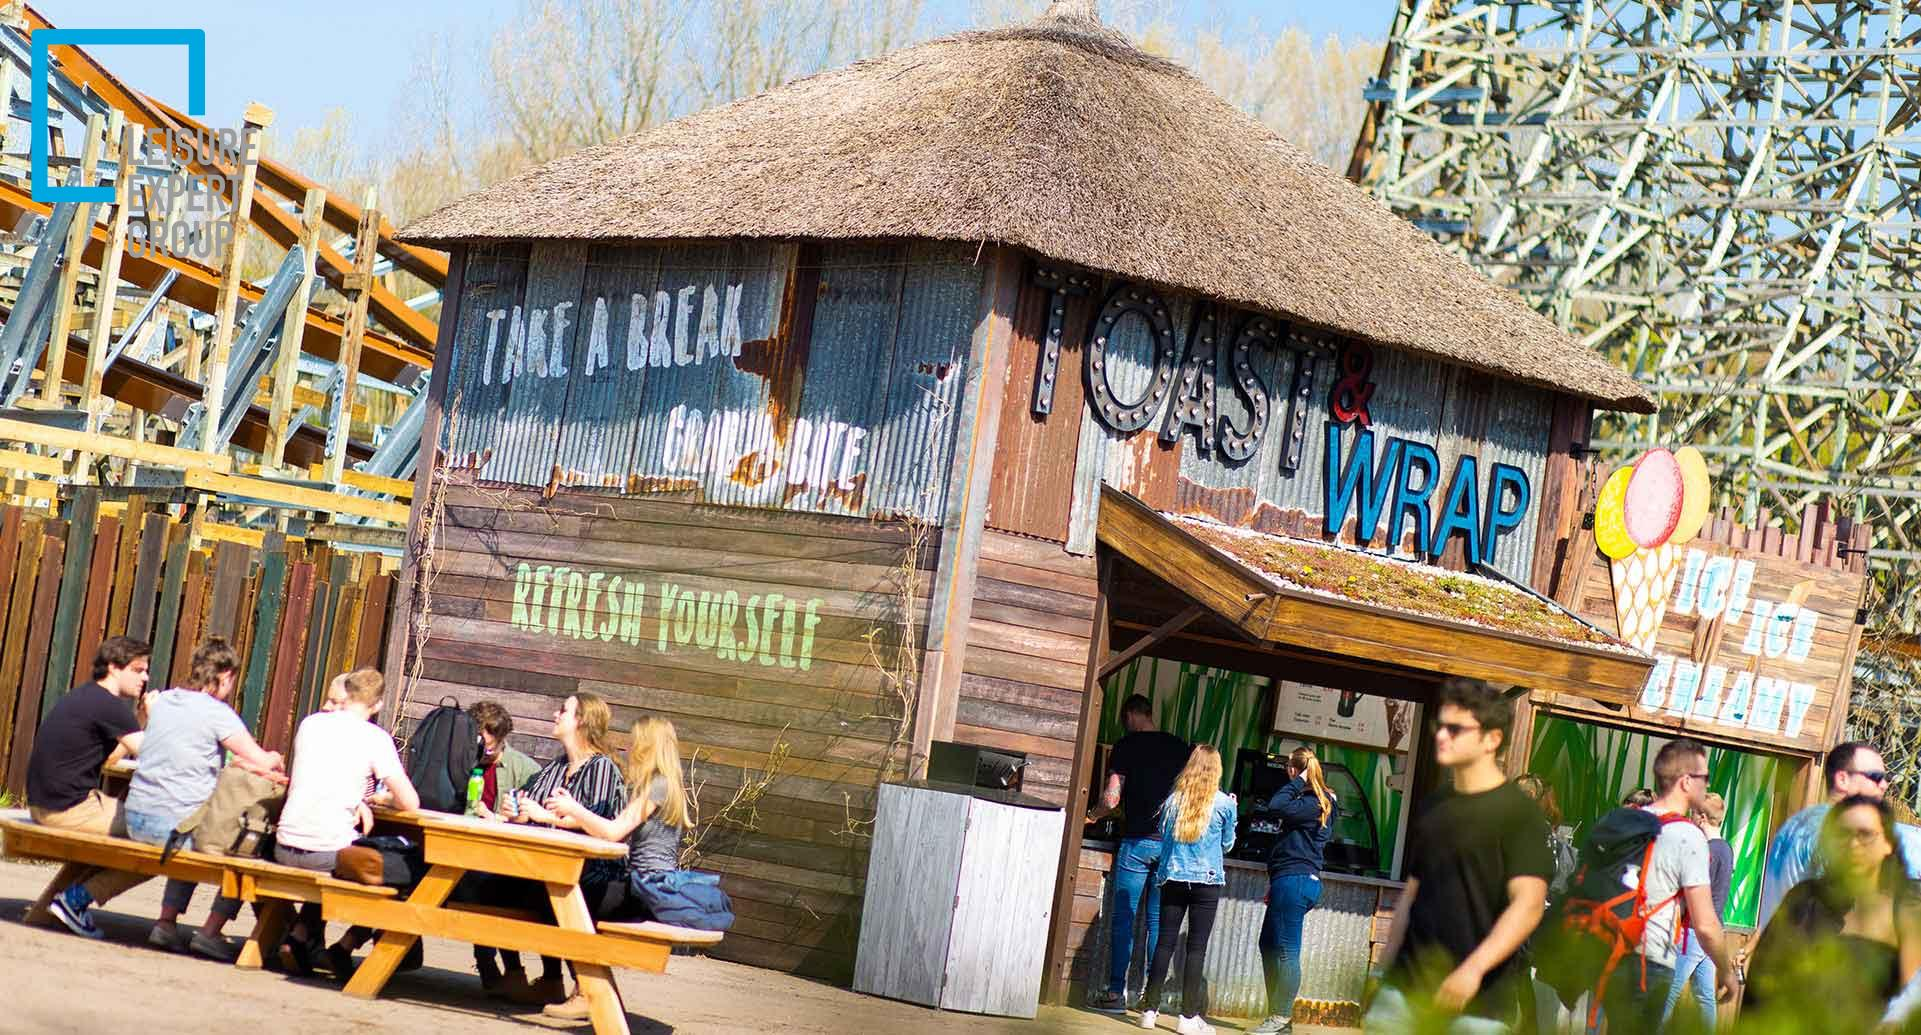 The tosti and wrap outlet at the Wilderness area in Walibi Holland